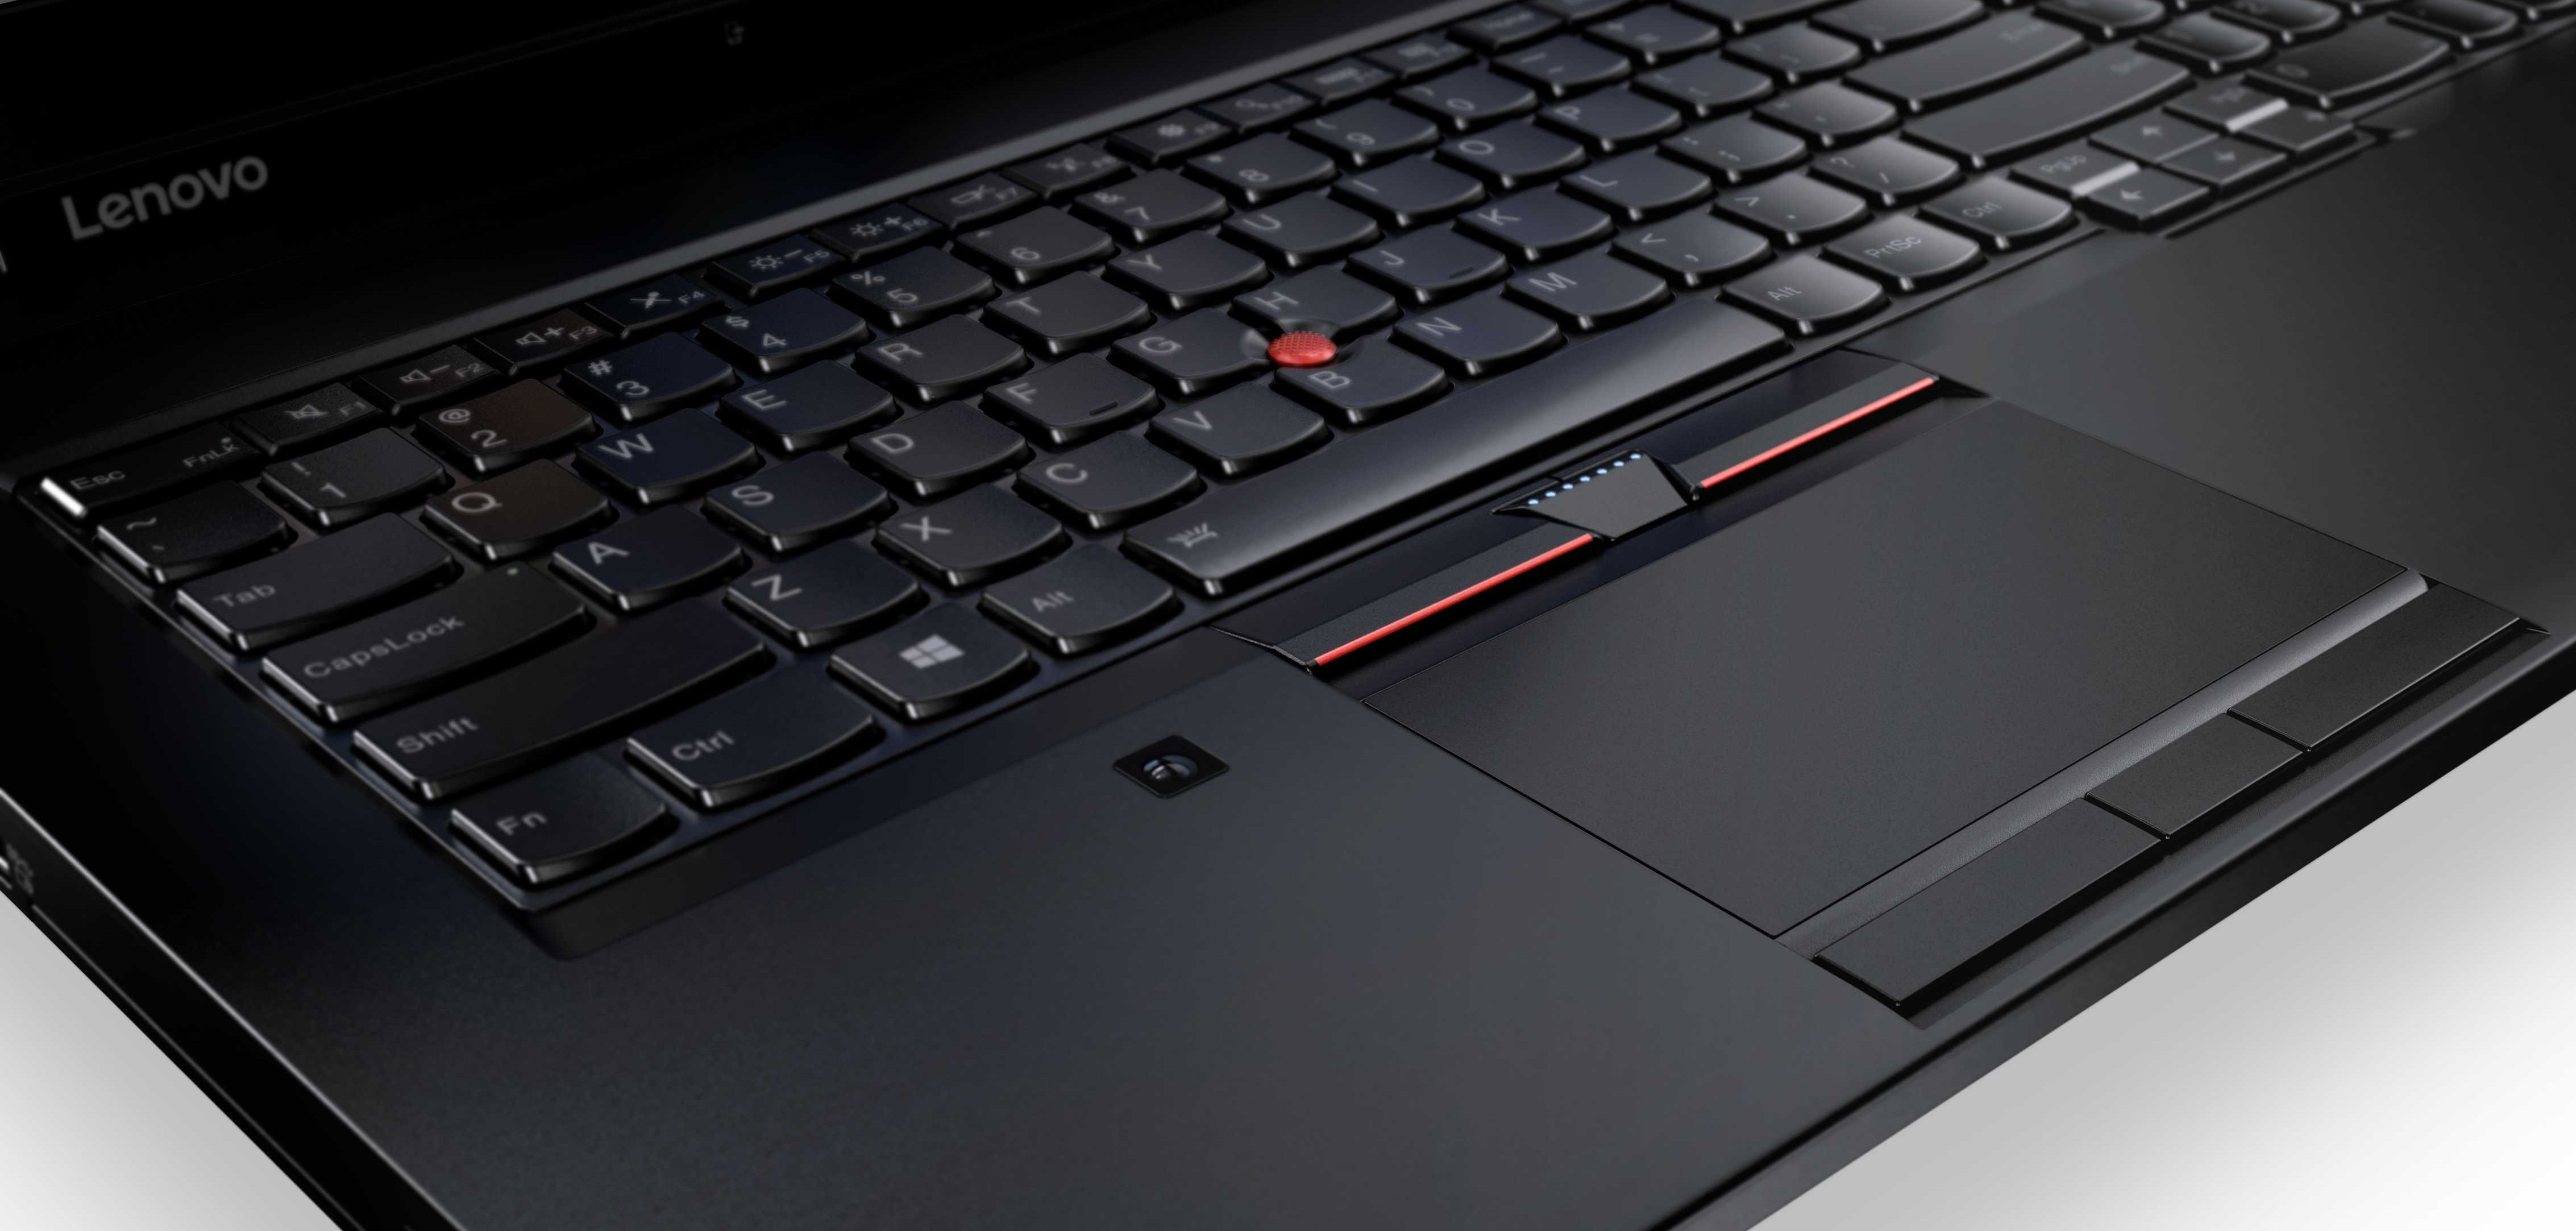 Lenovo Laptop Screen Not Displaying Anything After Updating